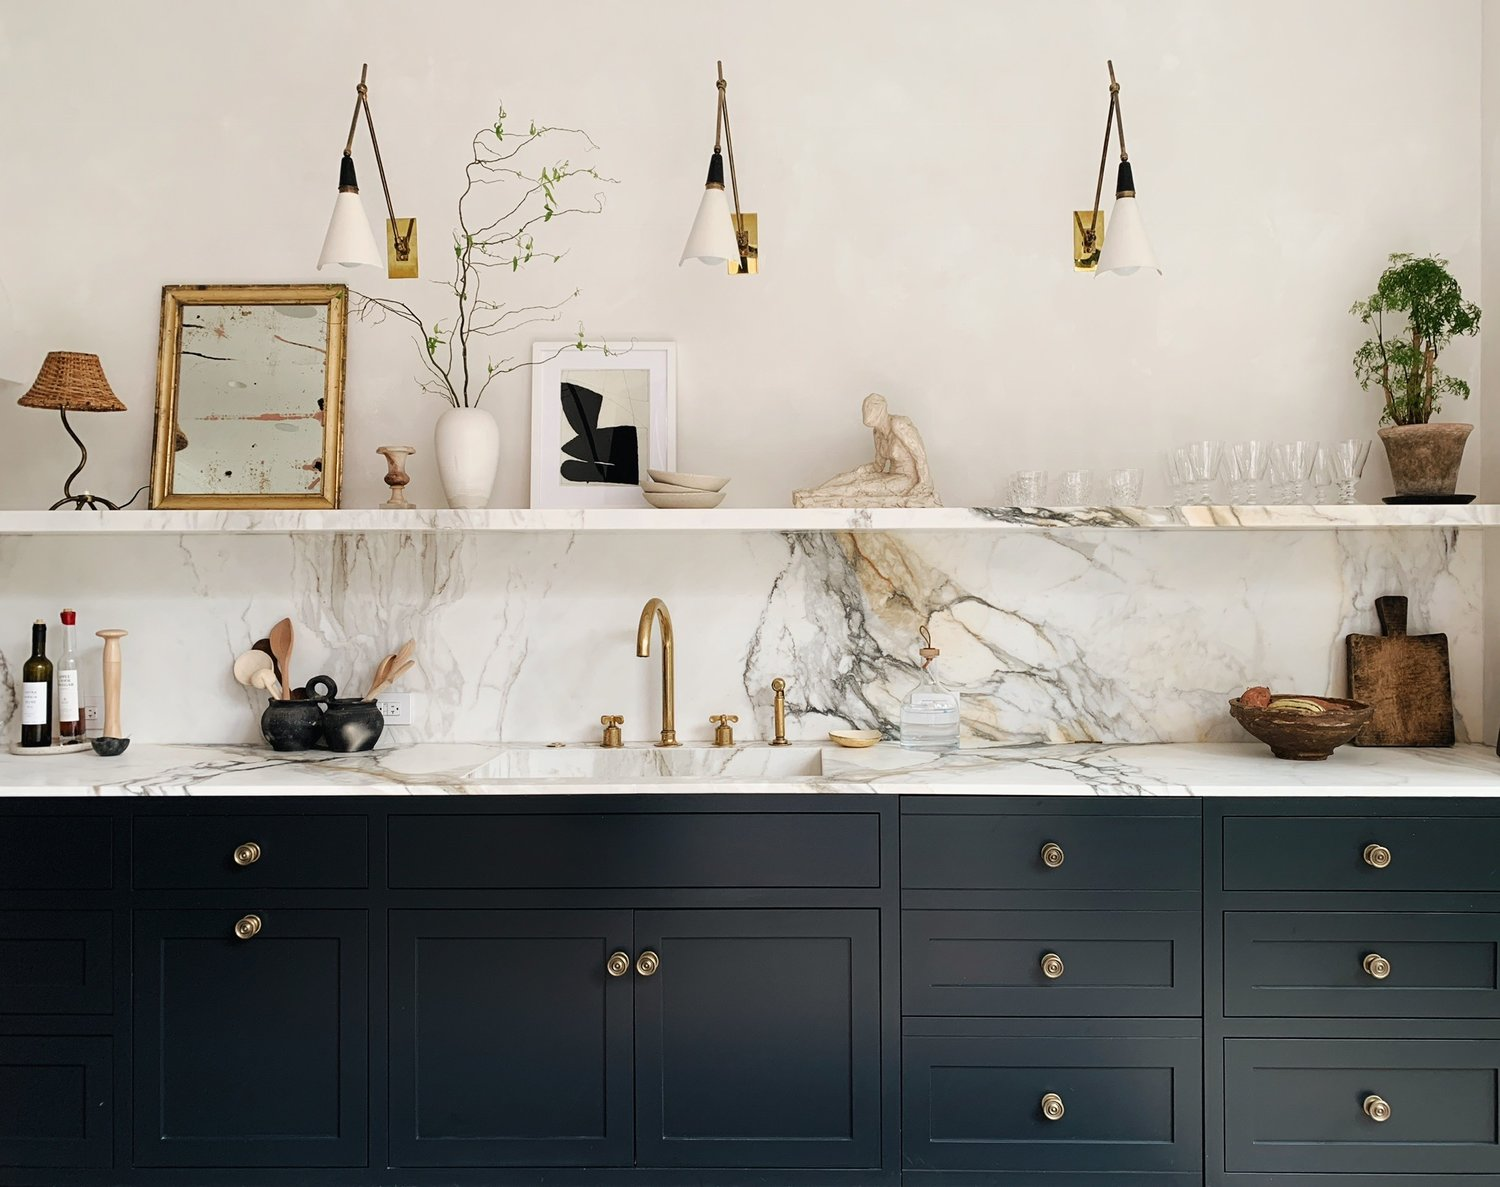 Kitchen Inspiration | The Whitefeather Journal